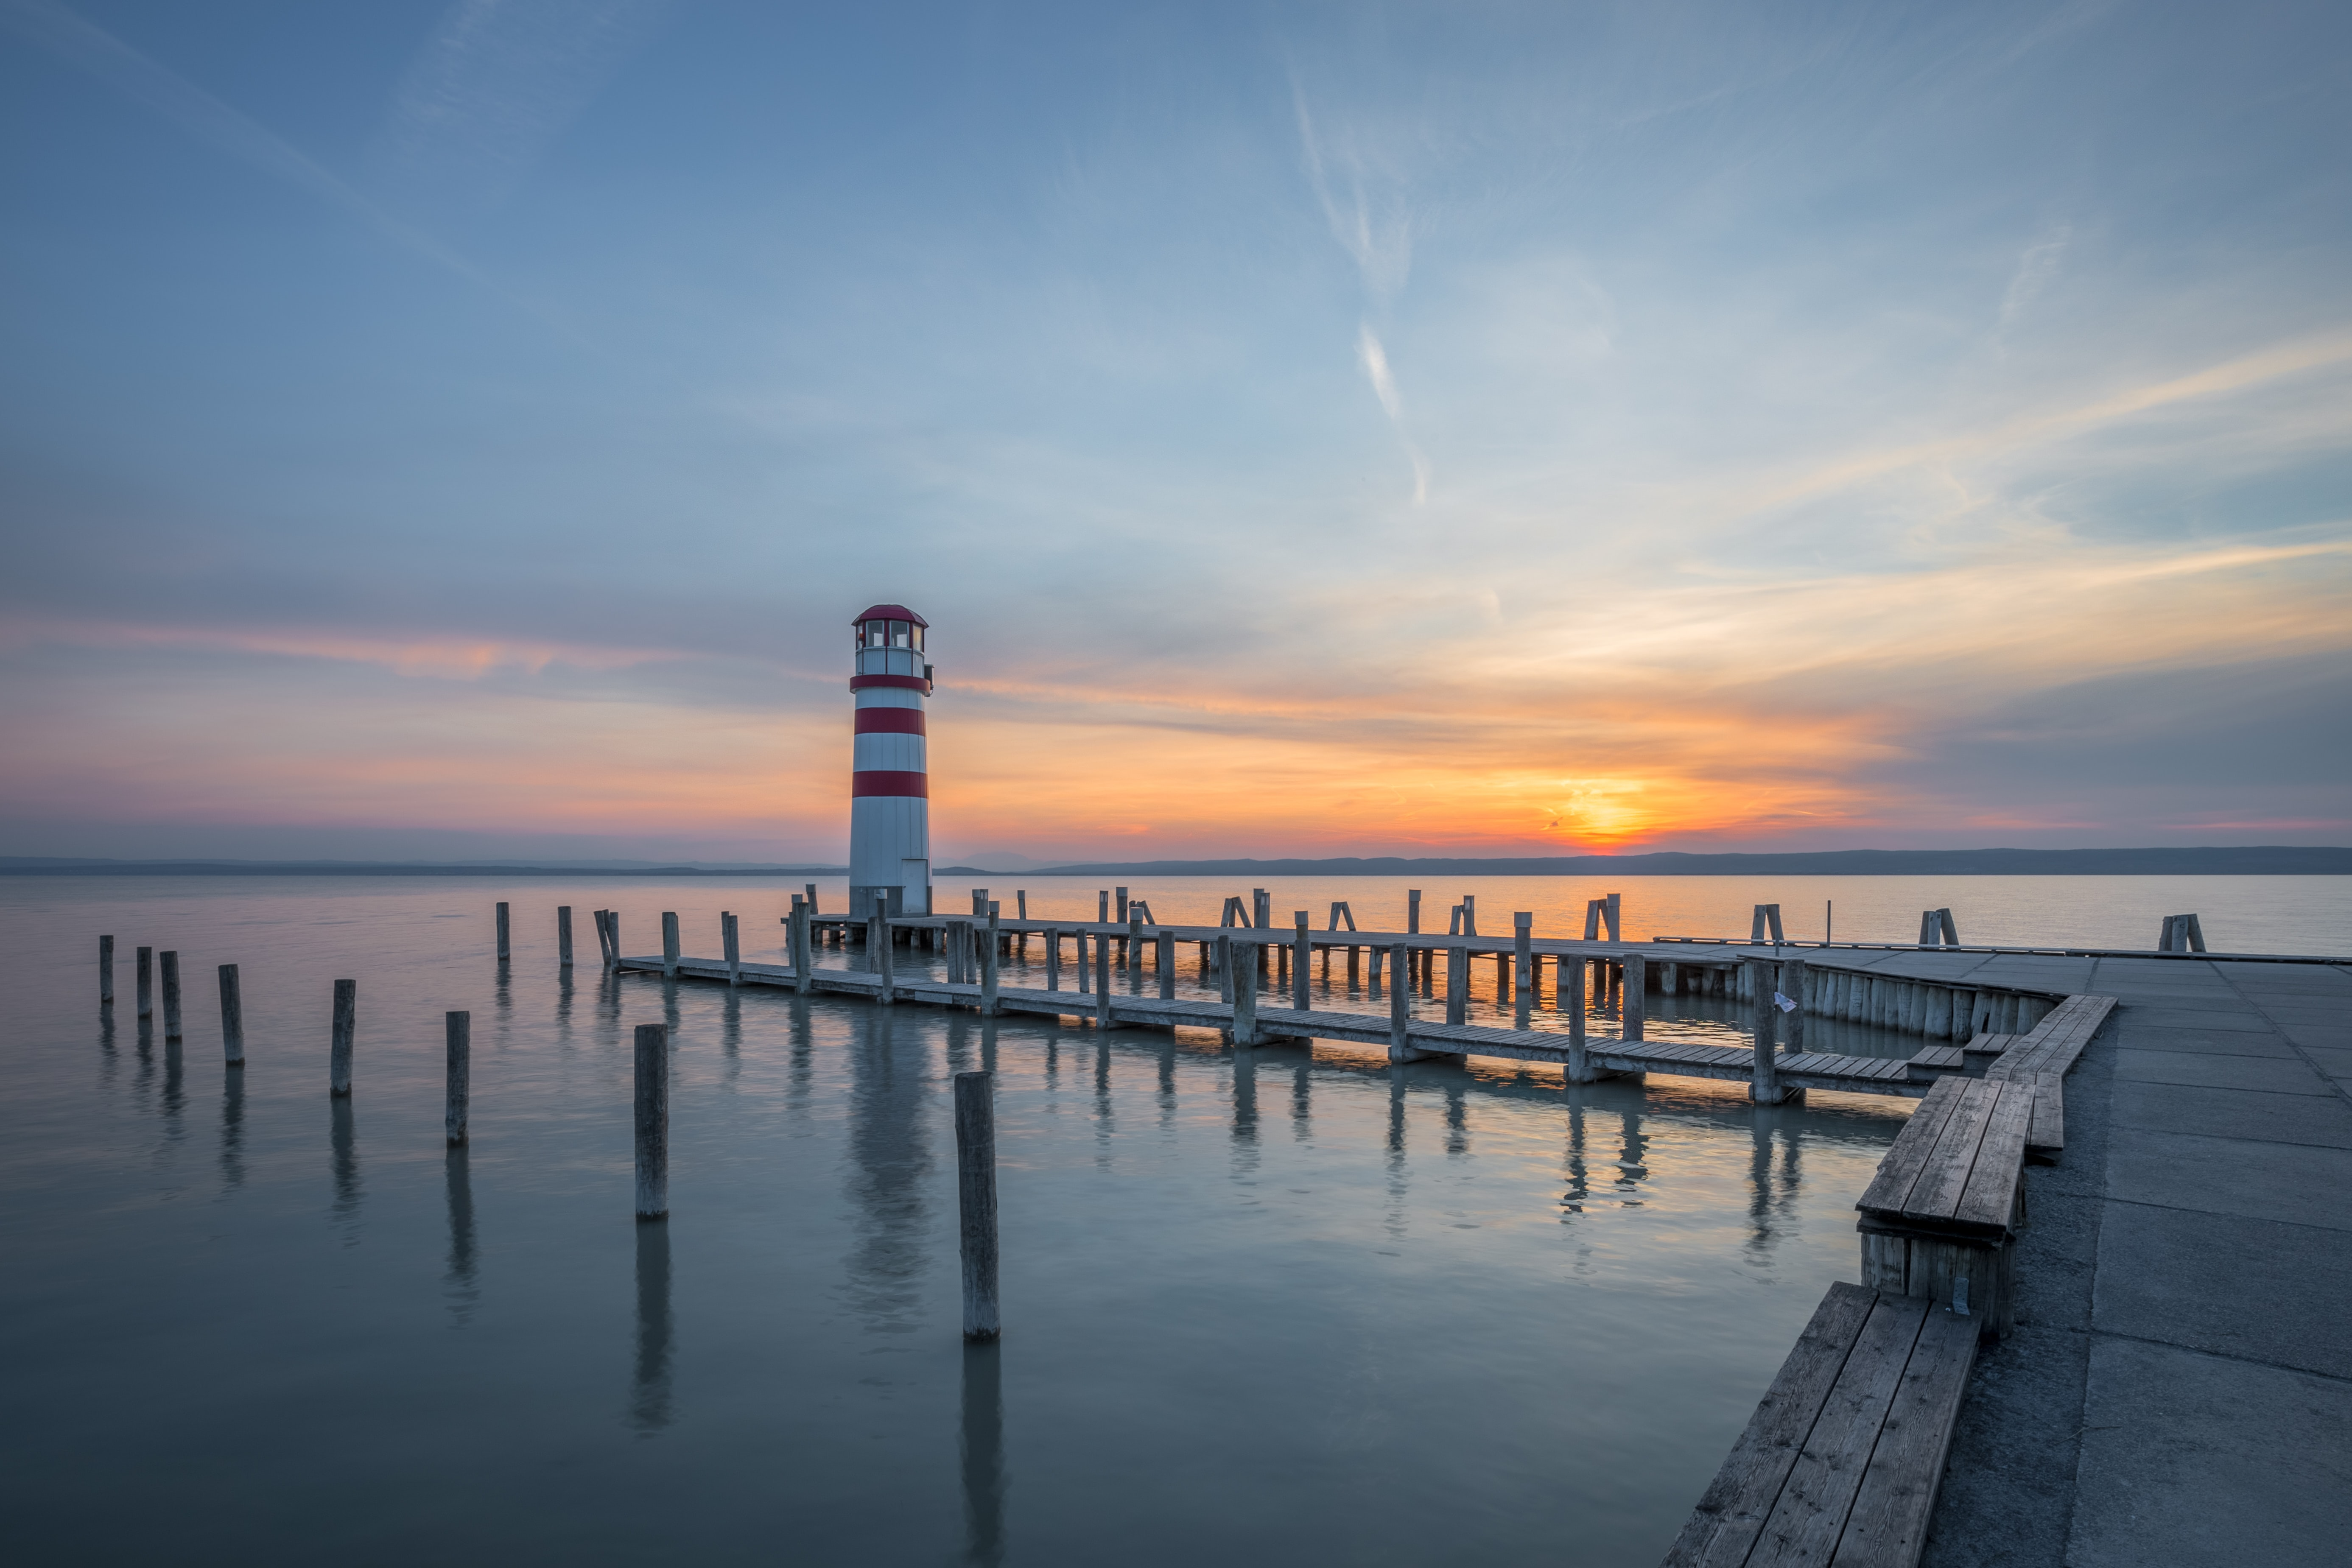 lighthouse at end of docks under clear sky during sunrise